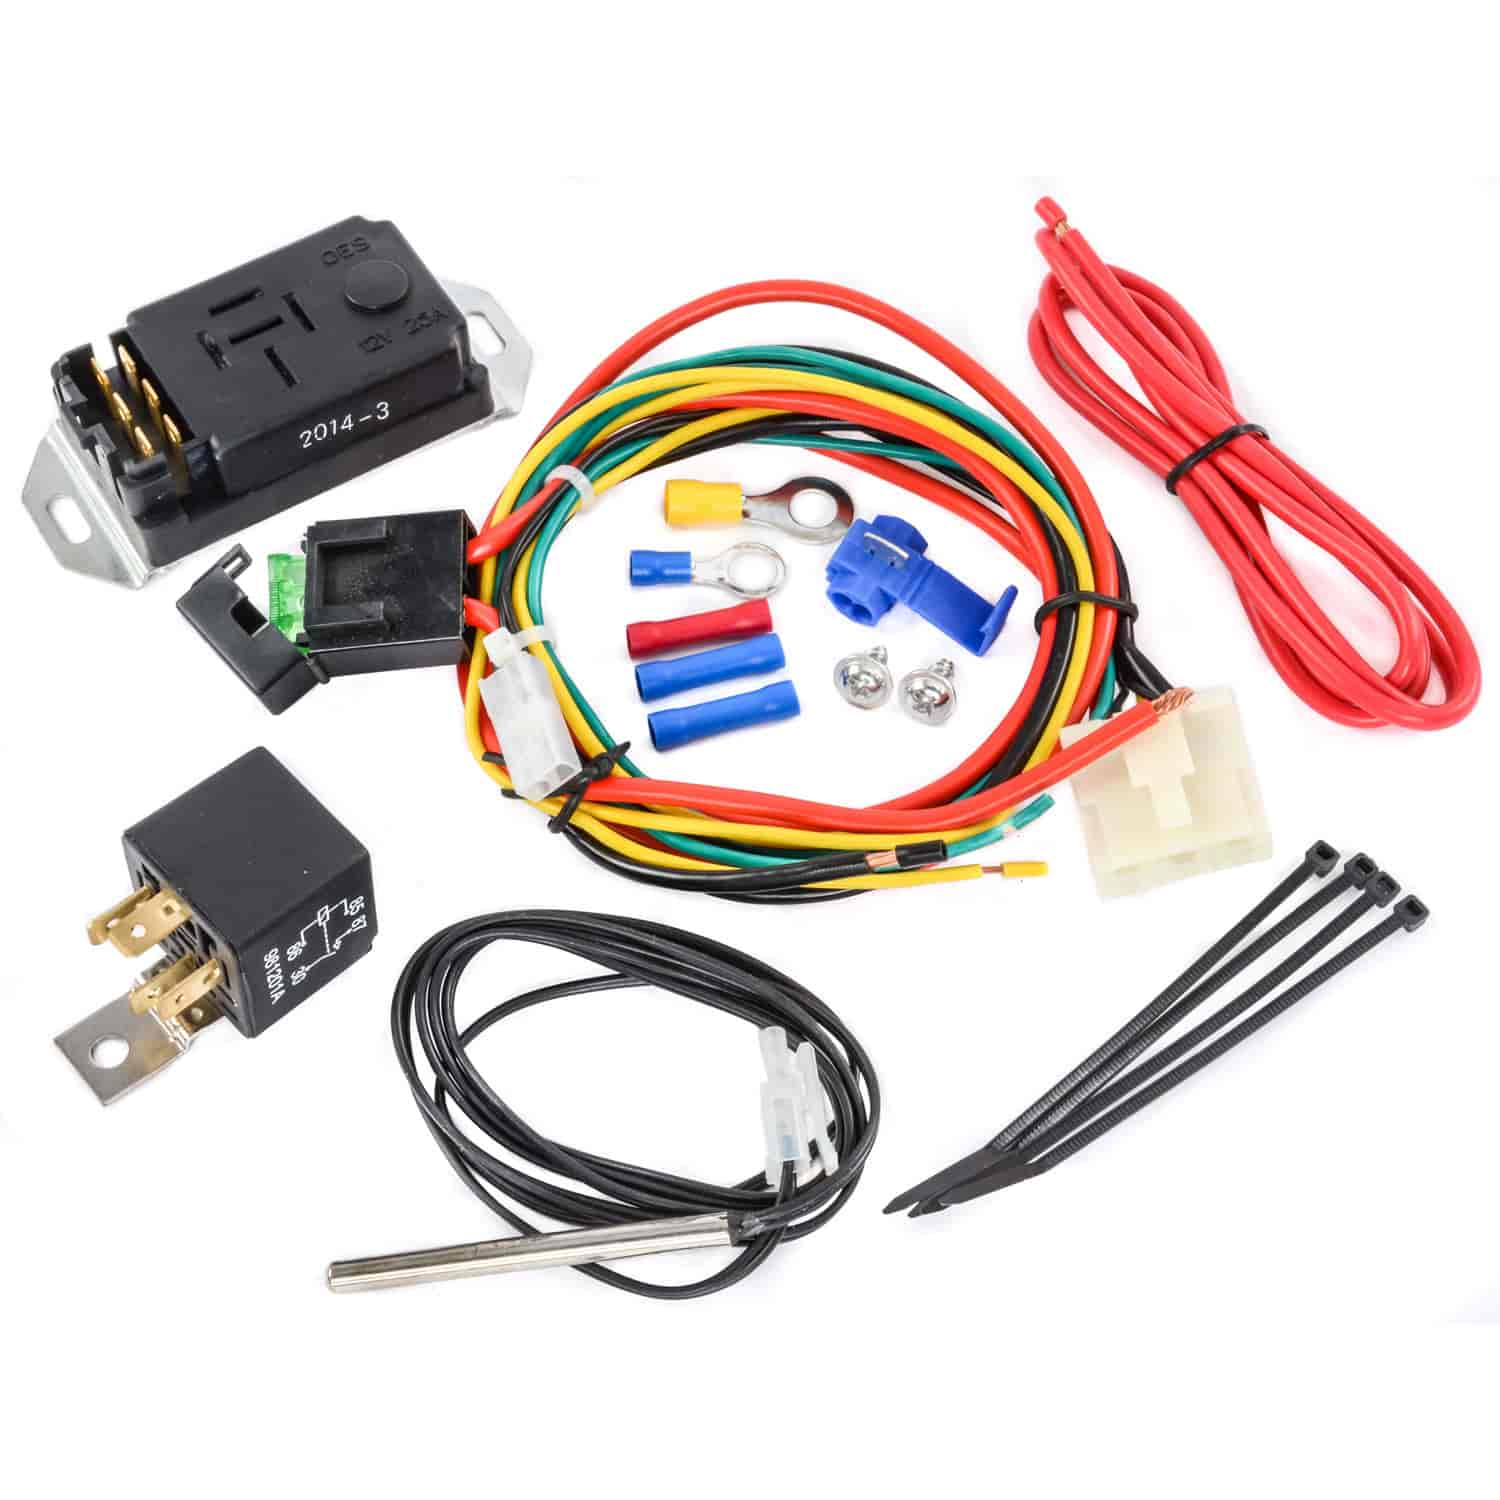 Proform 69599 adjustable electric fan controller kit with push in proform 69599 asfbconference2016 Images